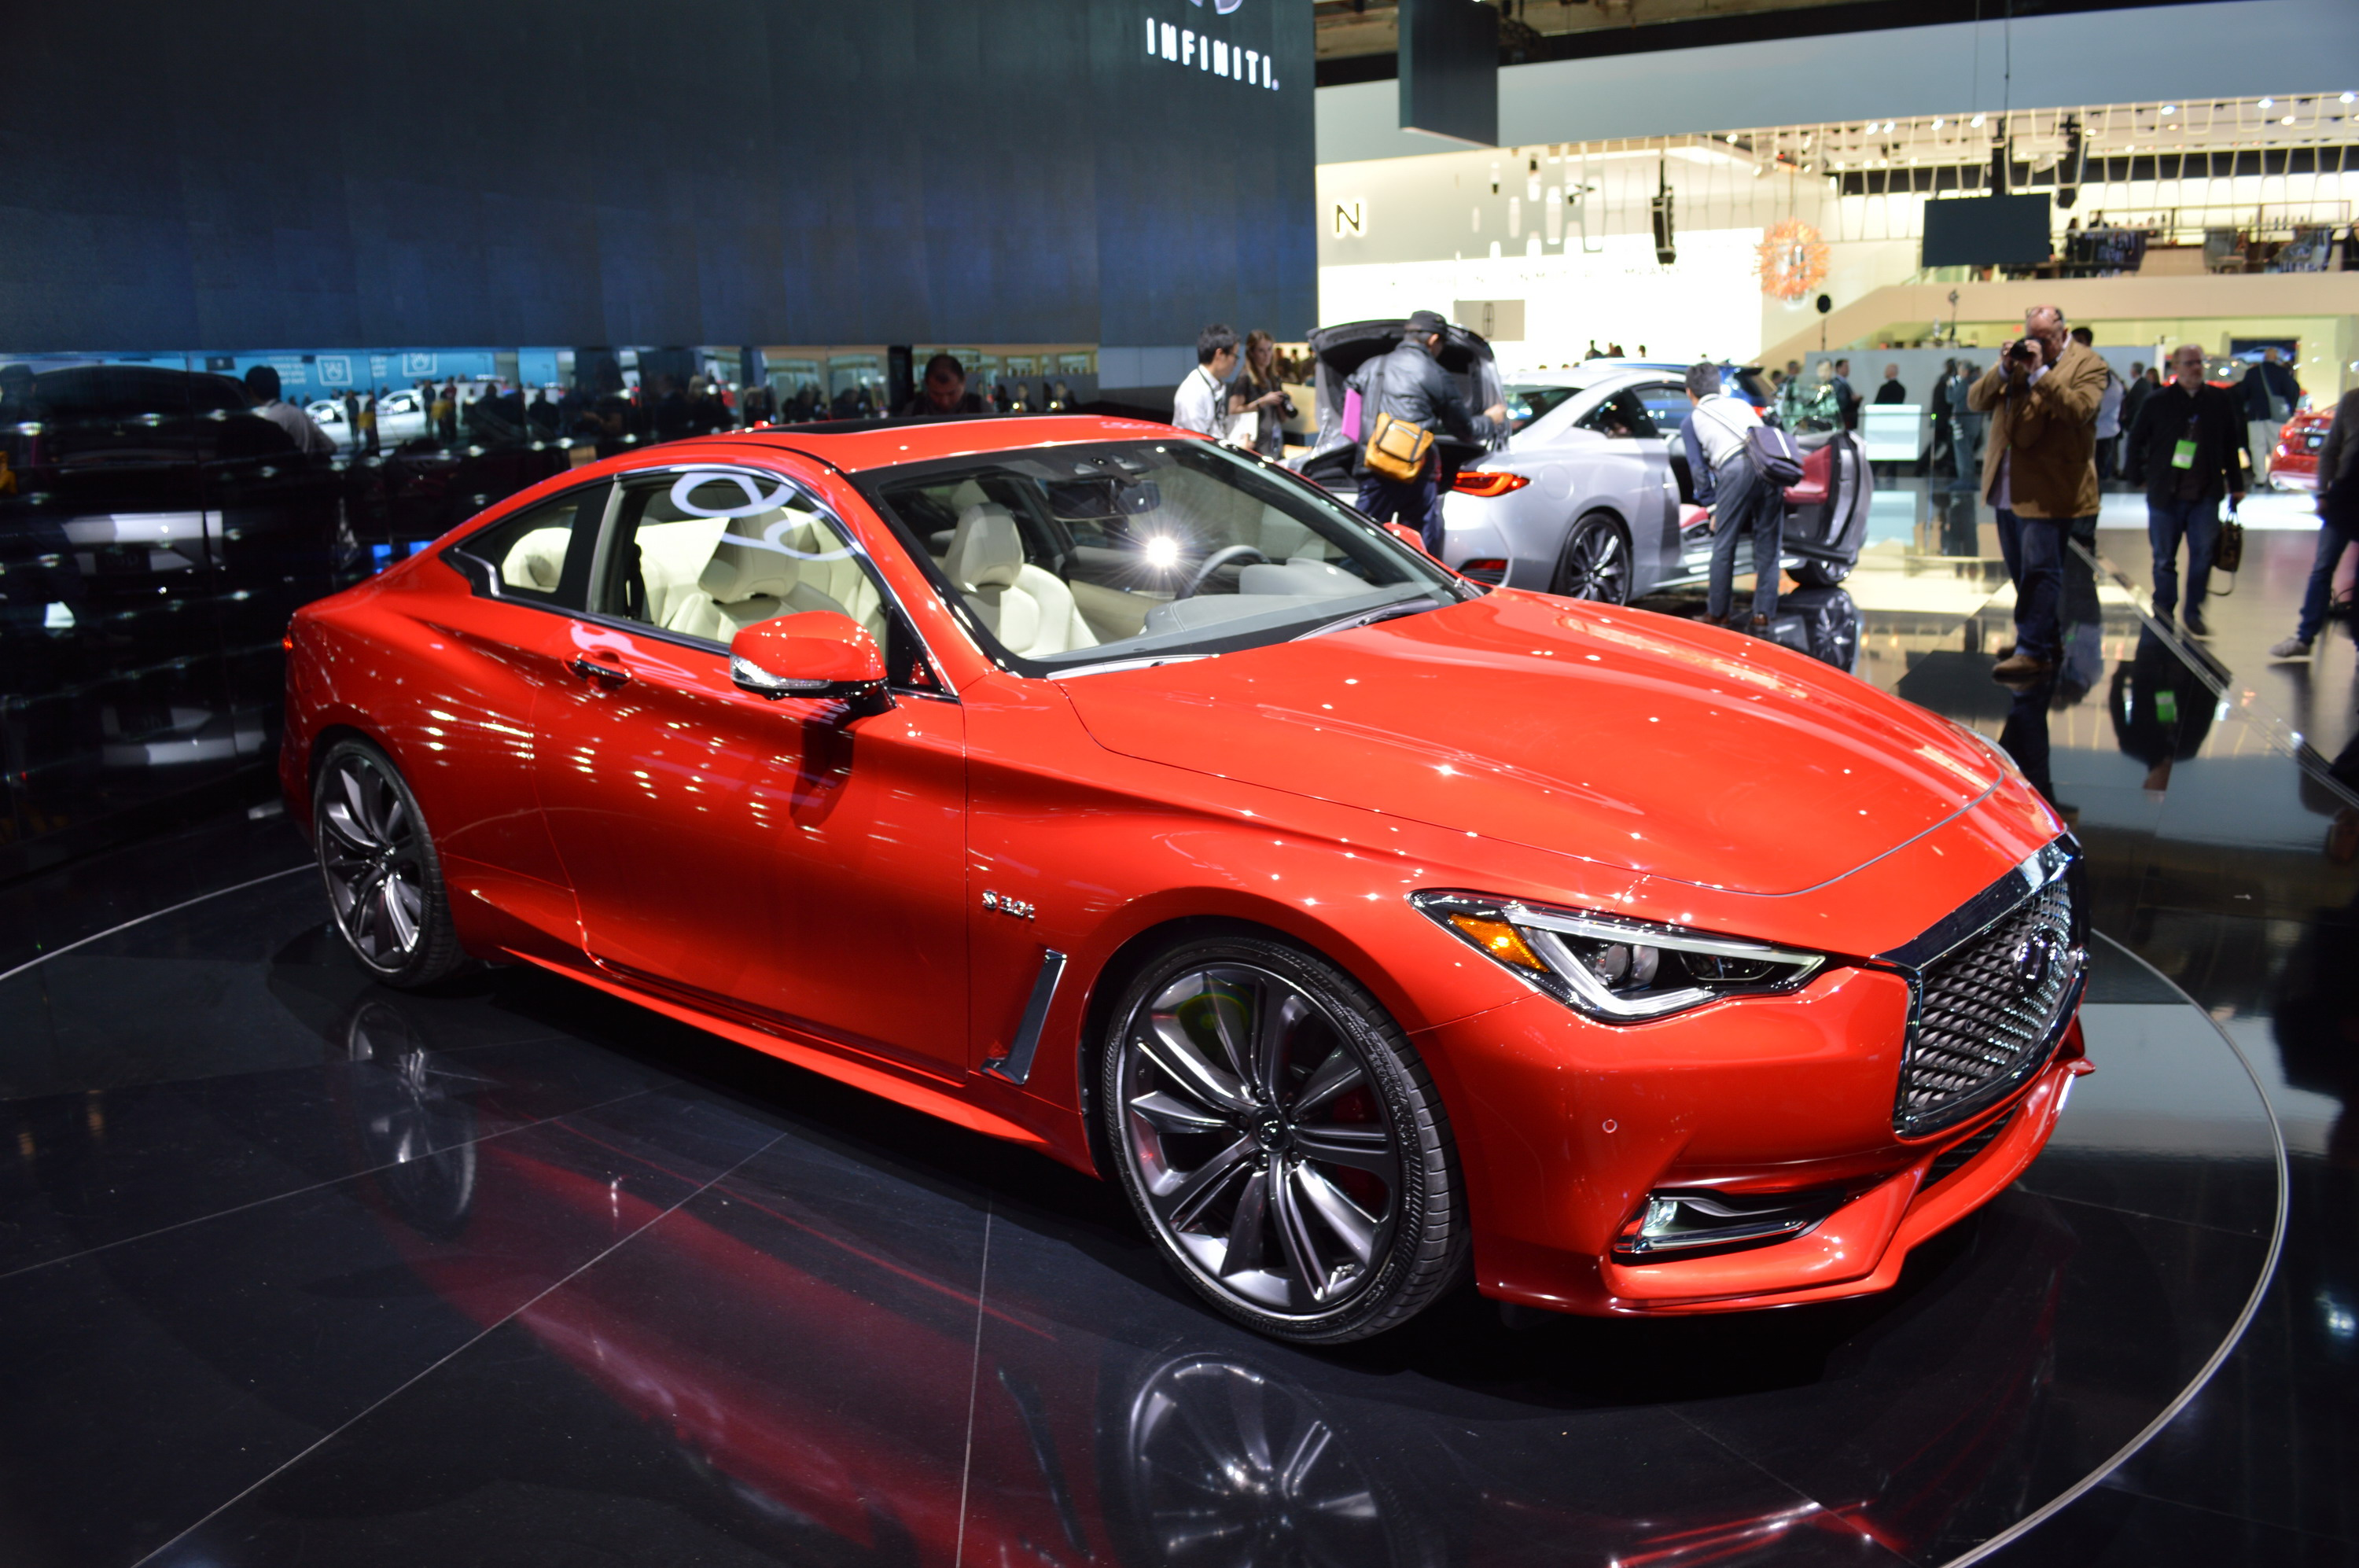 2017 infiniti q60 coupe review top speed. Black Bedroom Furniture Sets. Home Design Ideas